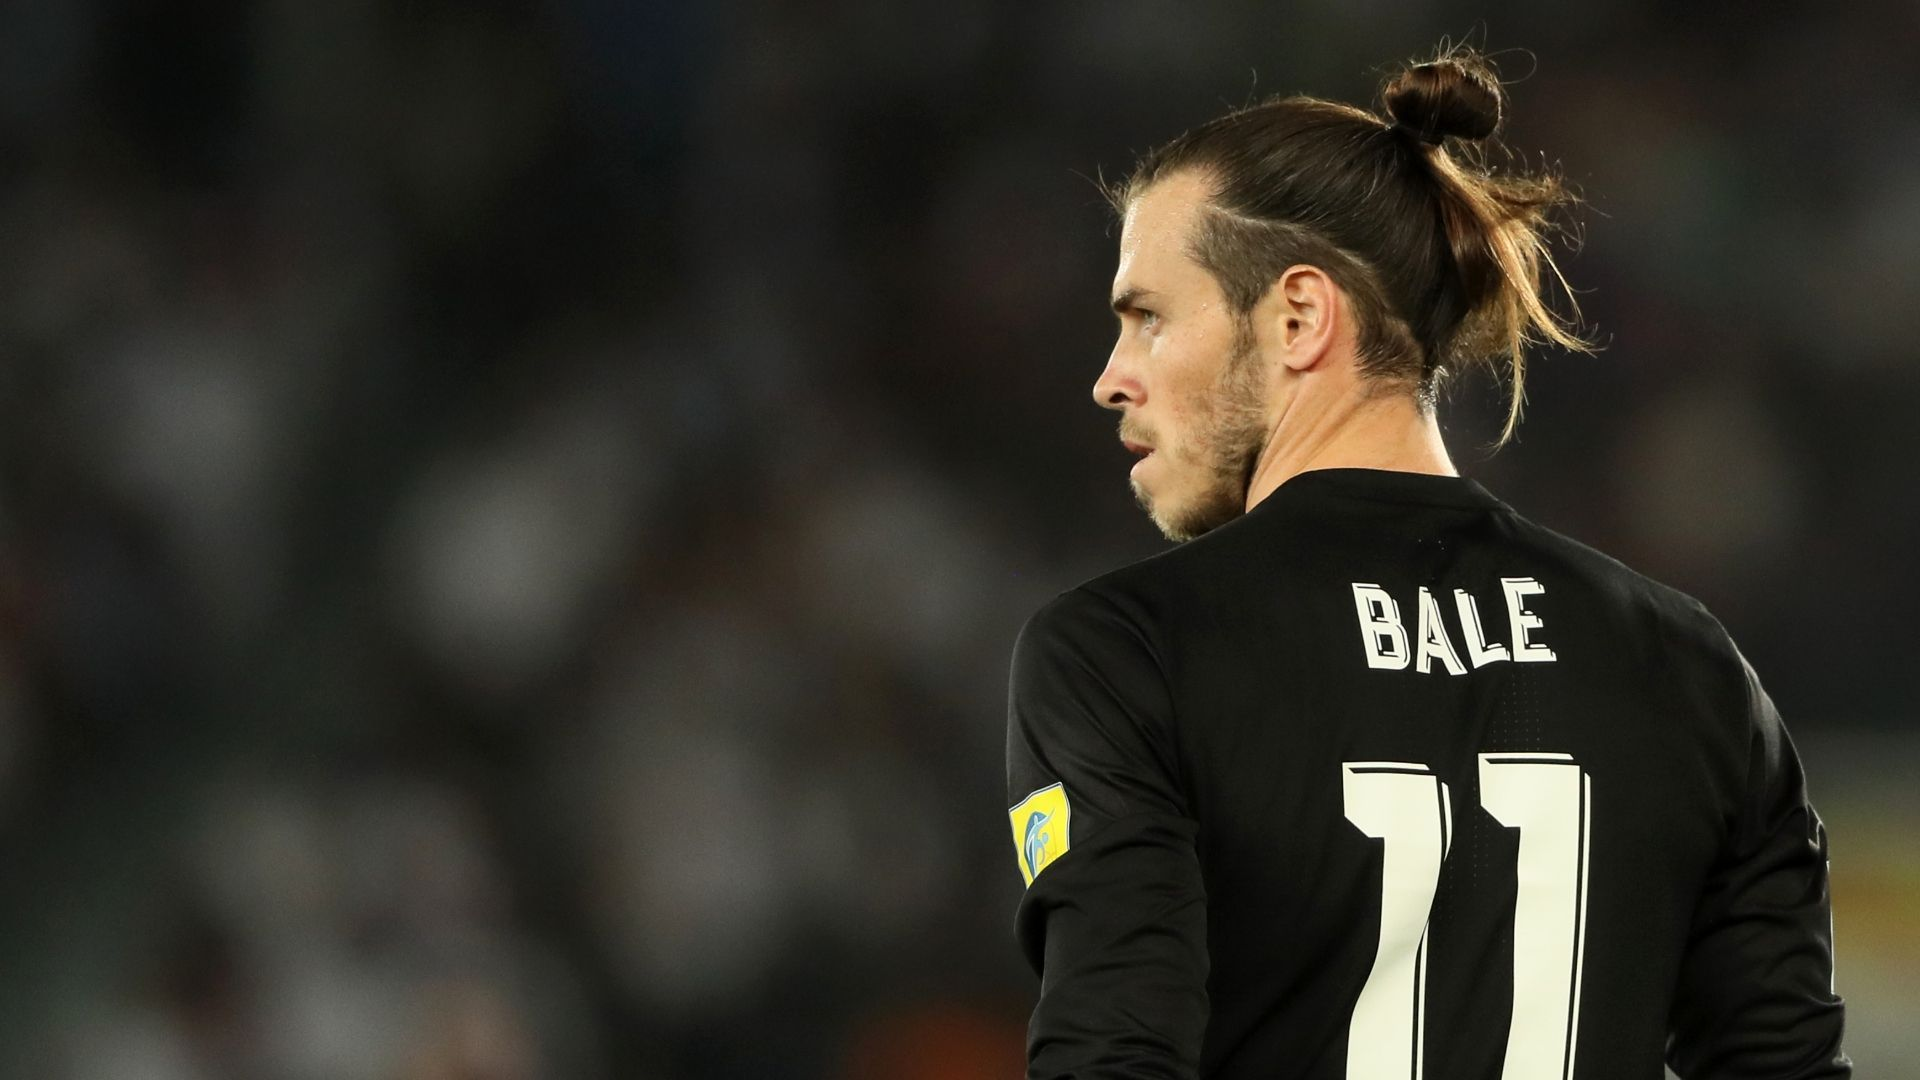 Bale hails winner vs. Al Jazira, slams VAR